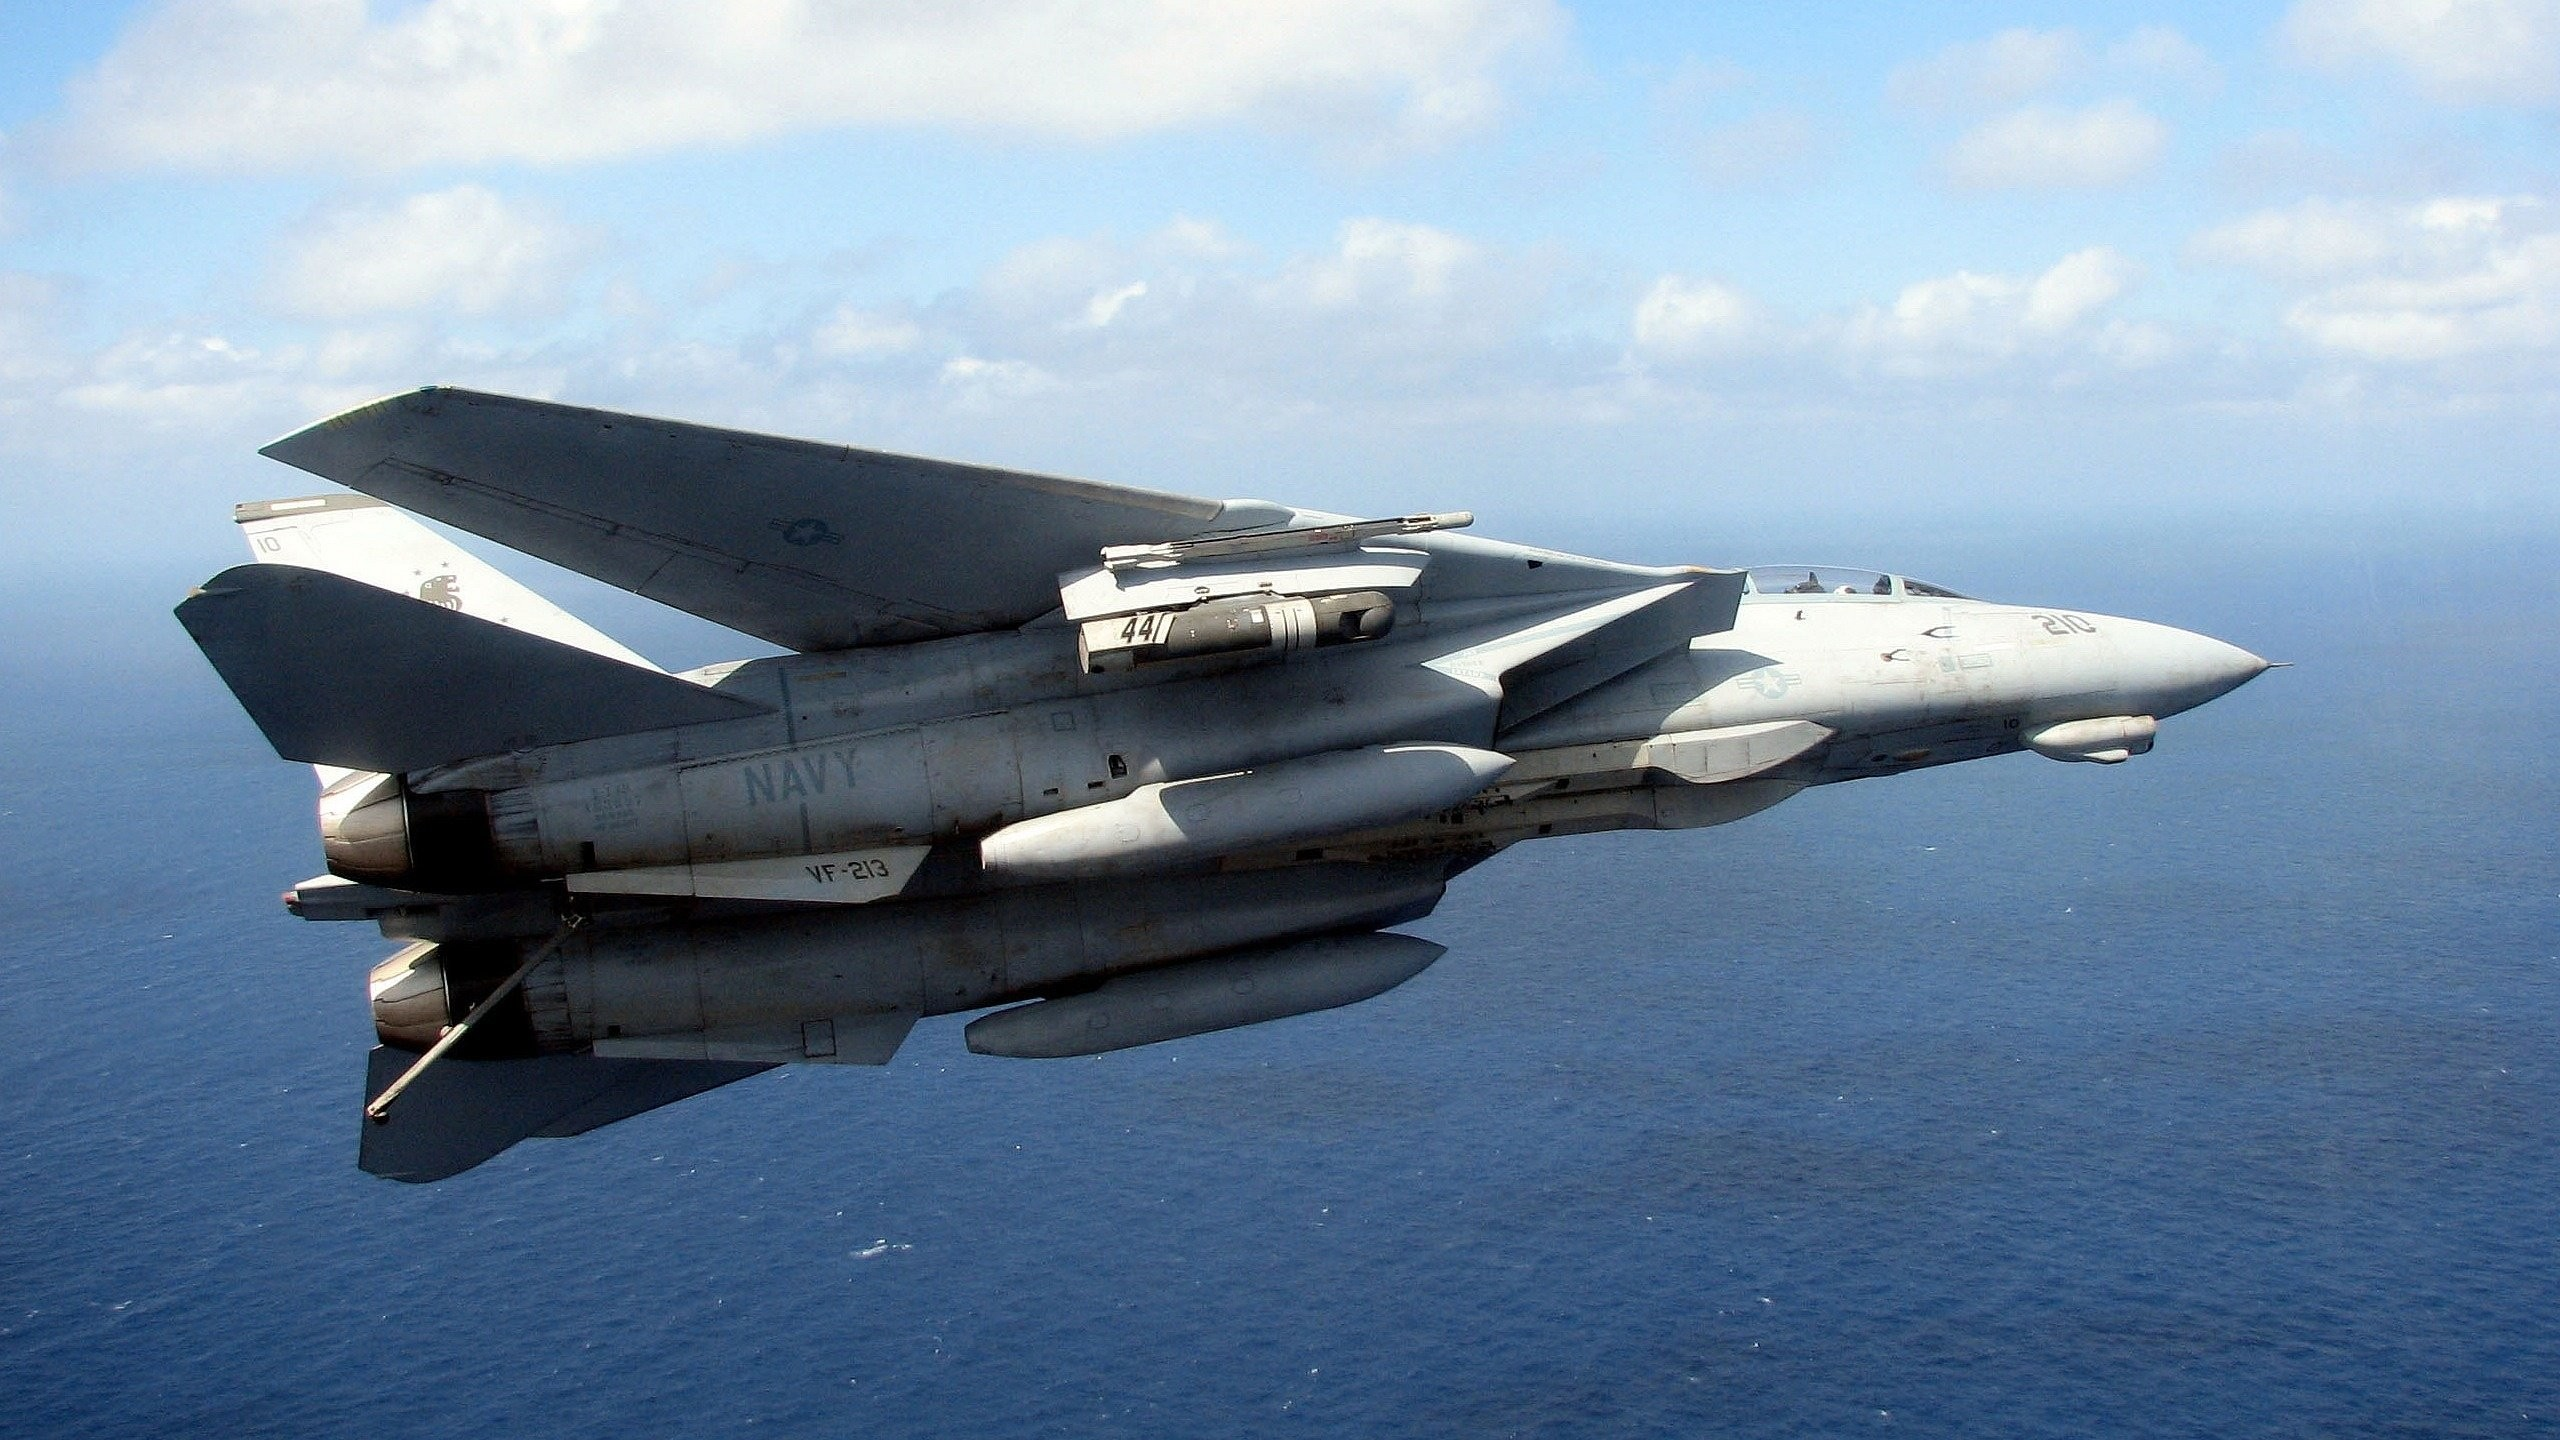 2560x1440 Grumman F-14 Tomcat Wallpapers